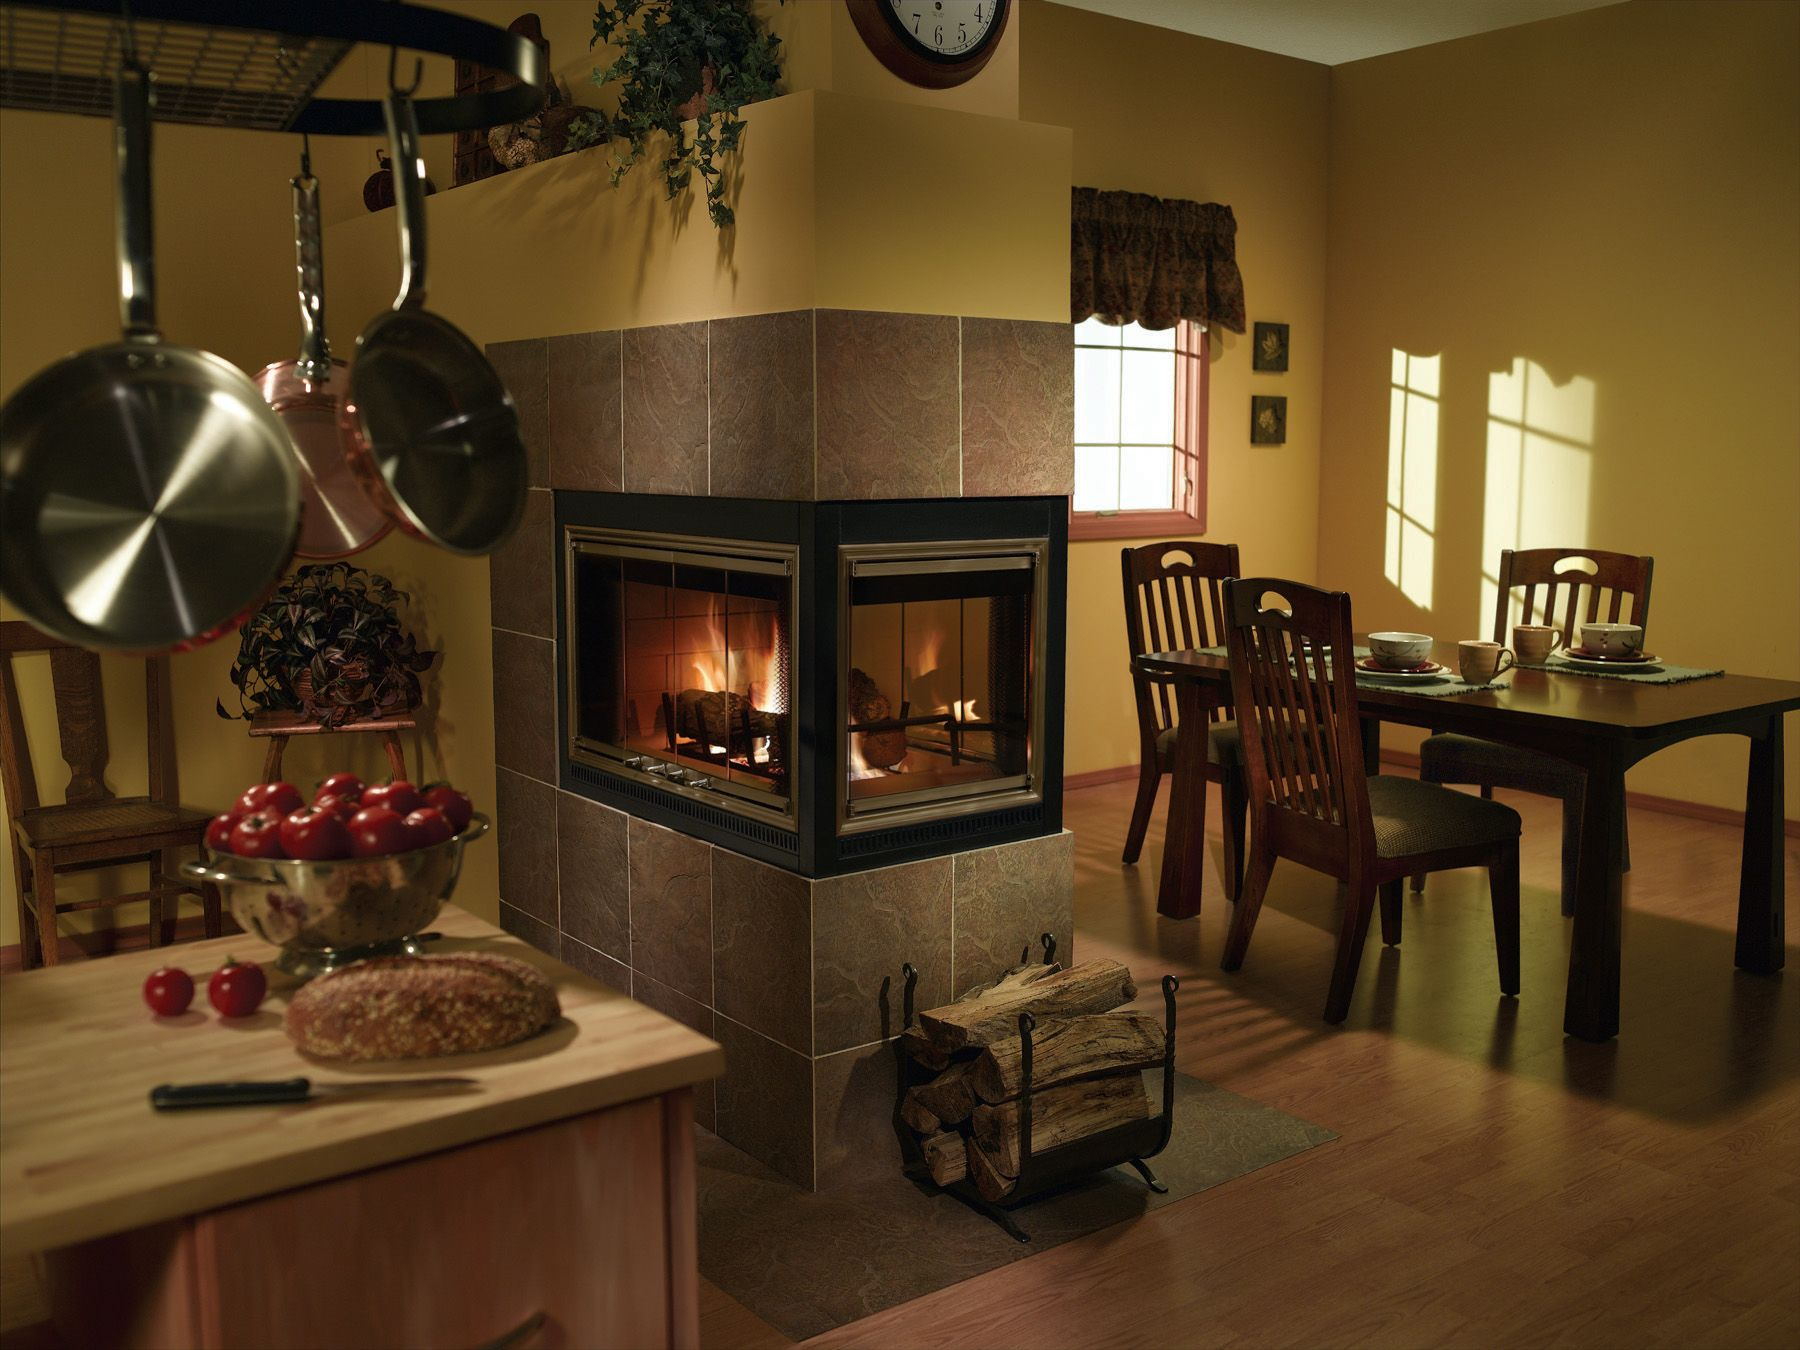 Kitchen Fireplace Design Ideas Part - 33: 2 Sided Fireplace Inserts Wood Burning | ... : NYC Fireplaces And Outdoor  Kitchens